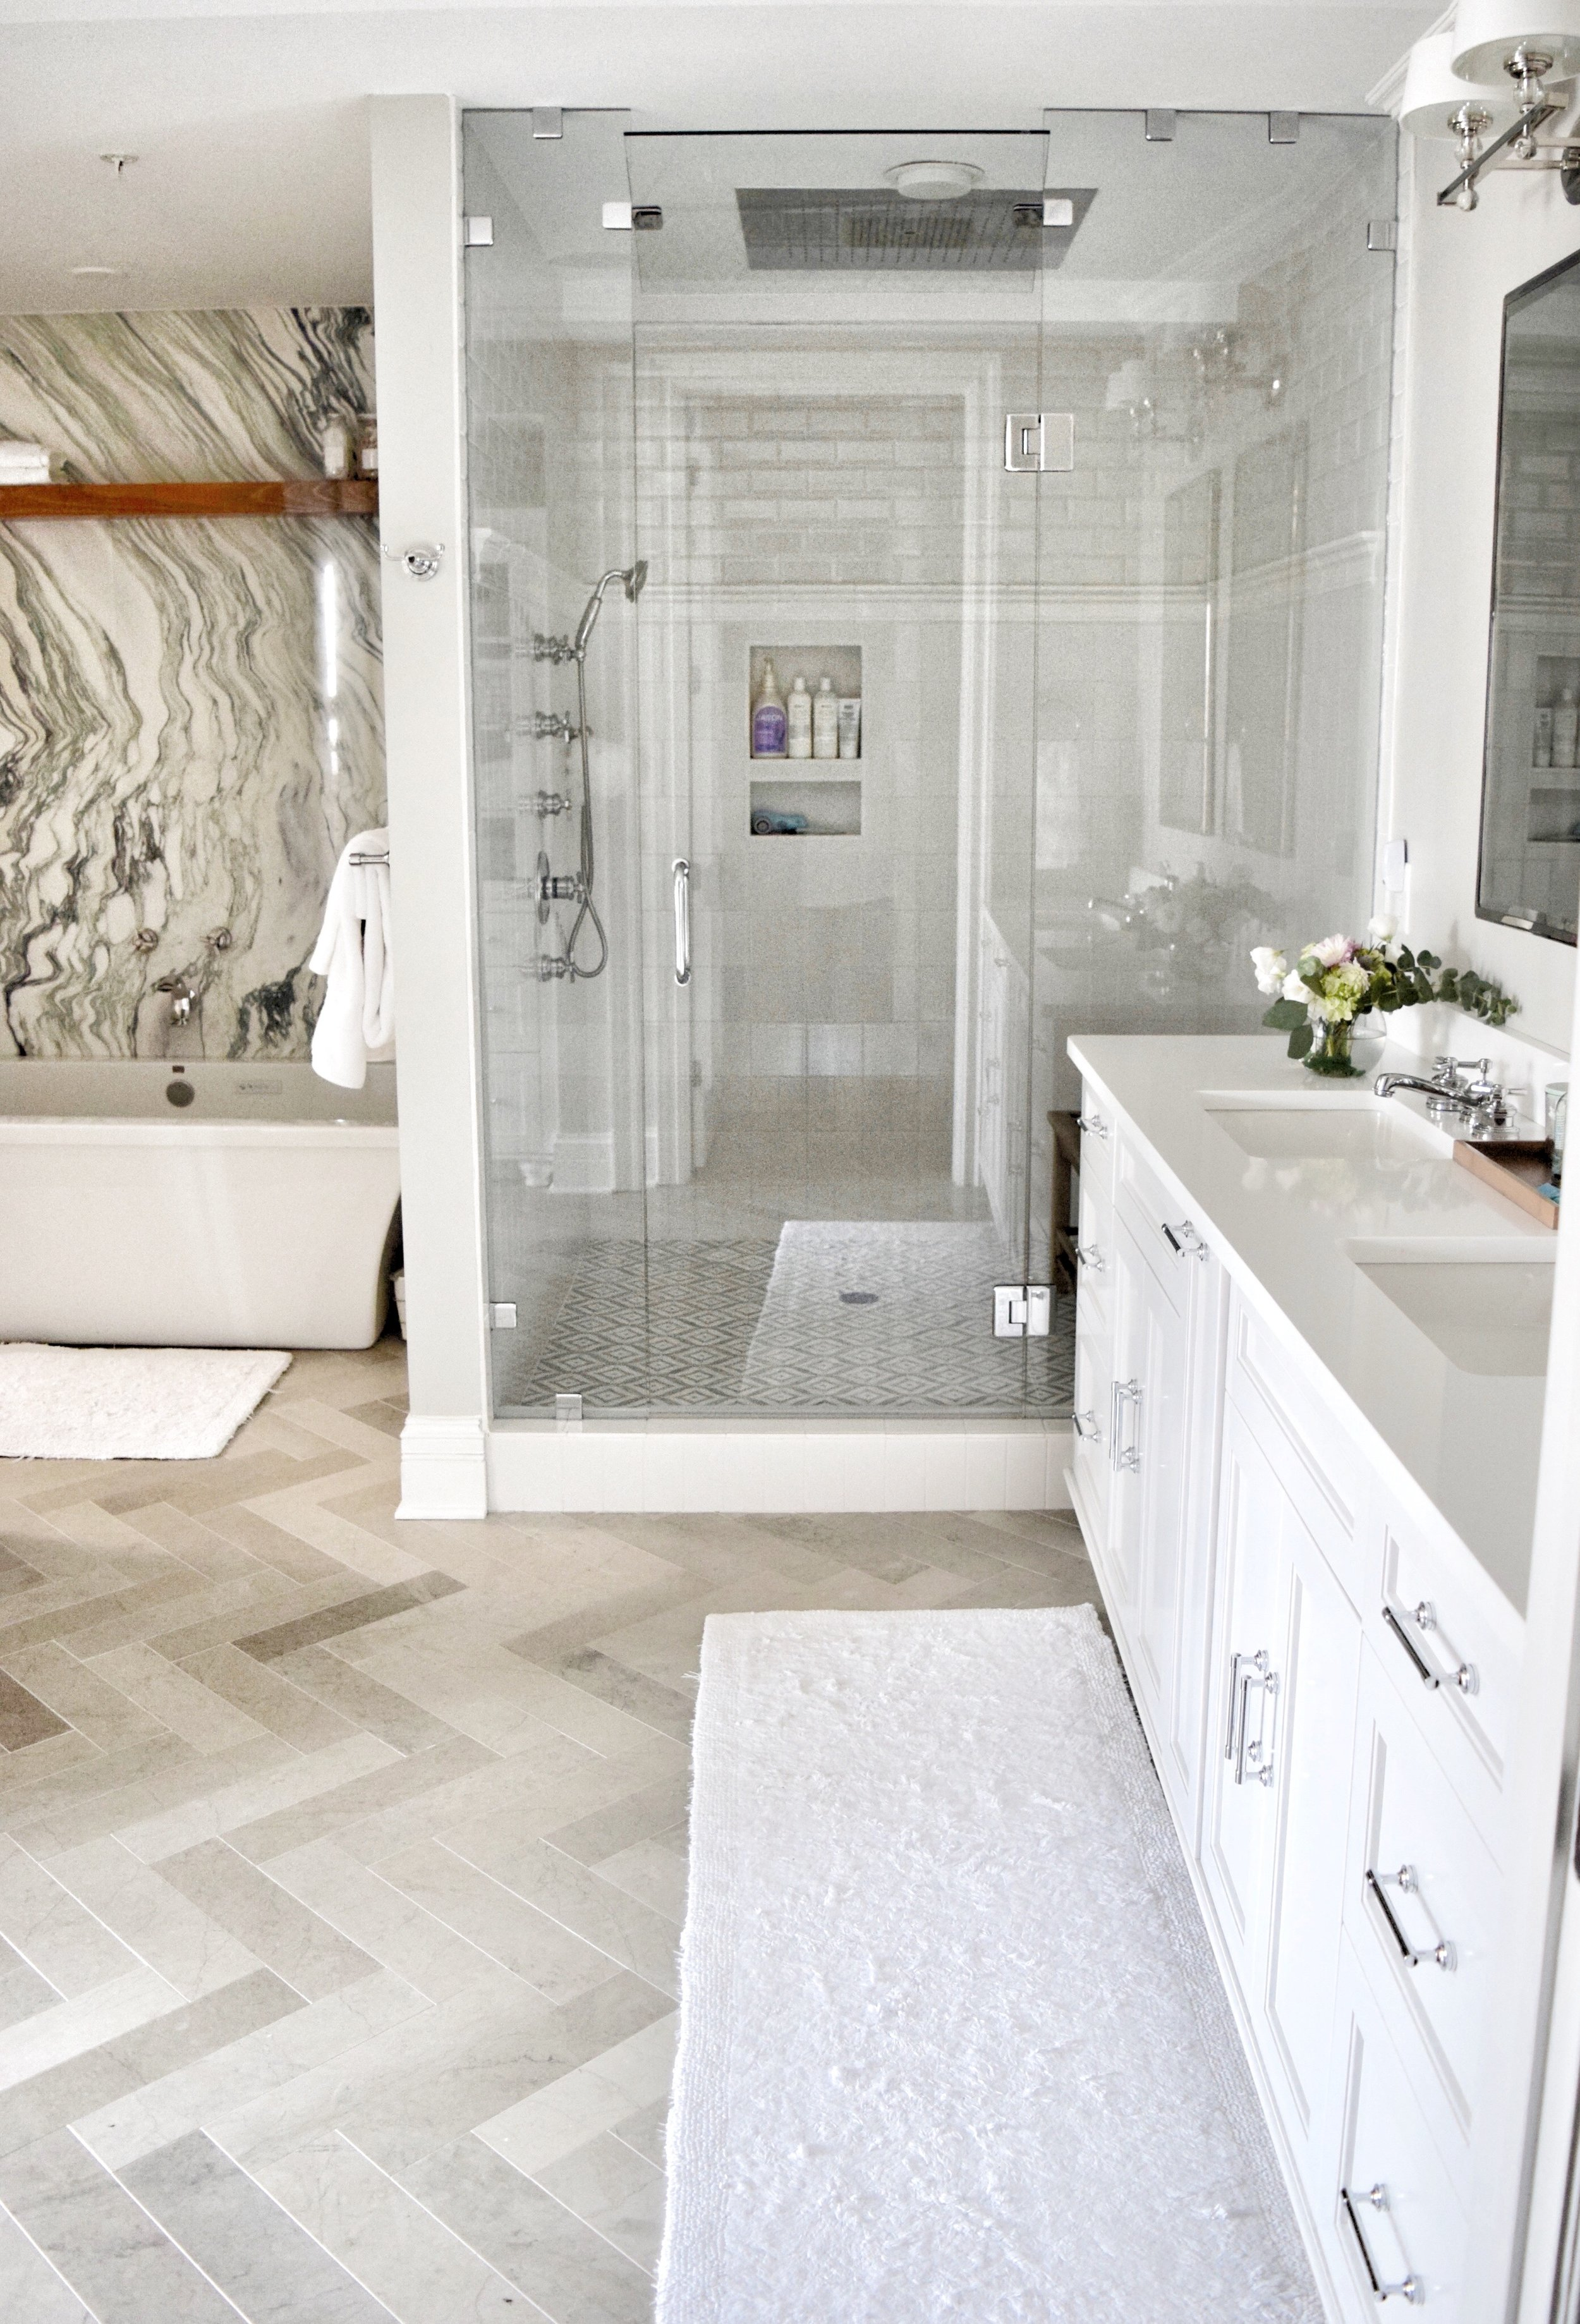 Bright White Master Bathroom - Marble Slab Behind Tub - Bianco Ondulare - #mywalkerzanger